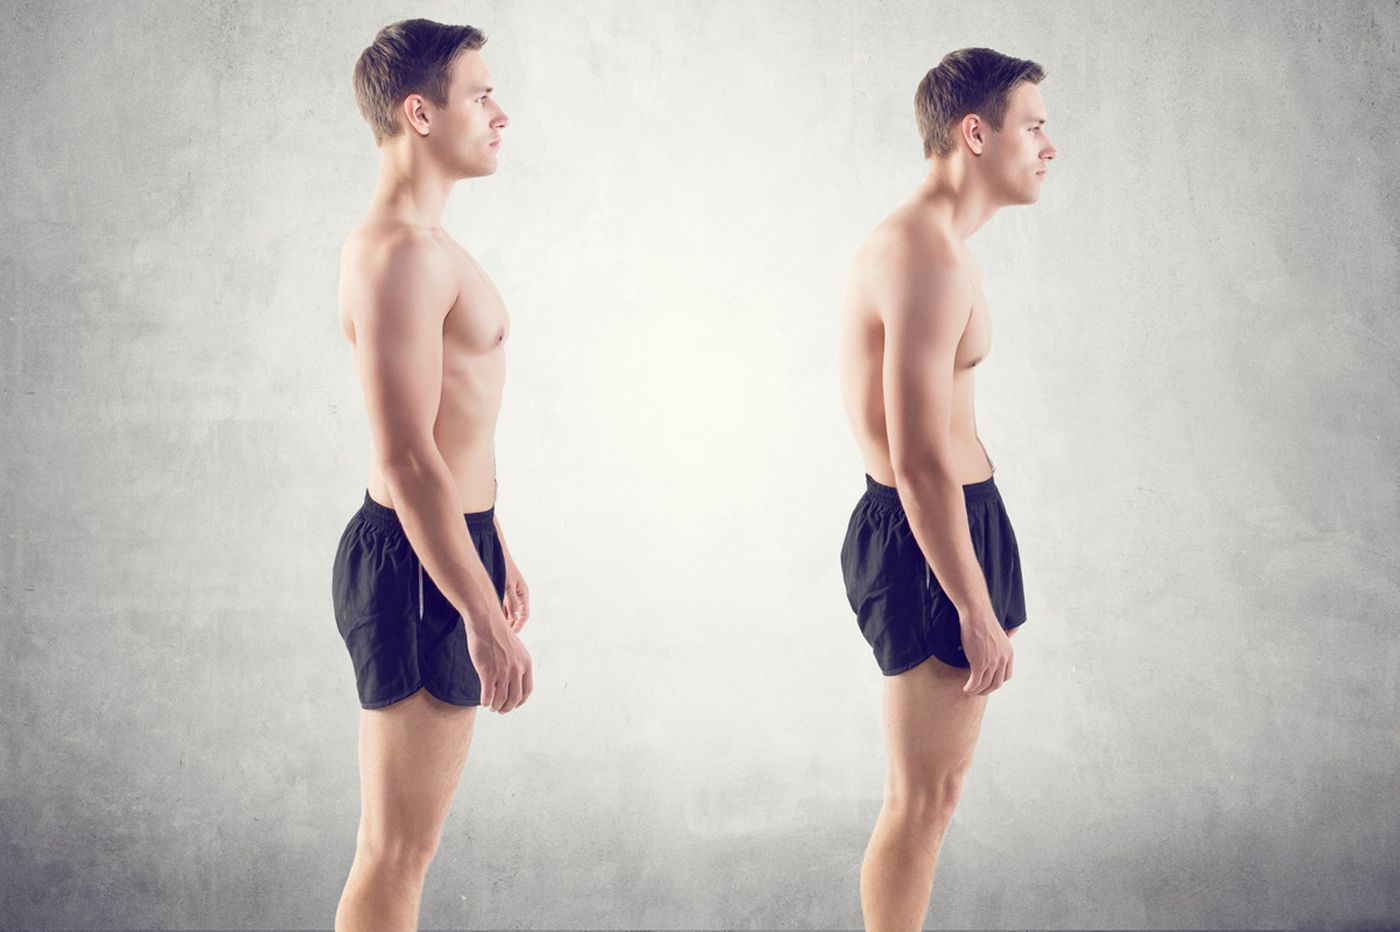 Here's why good posture is so important